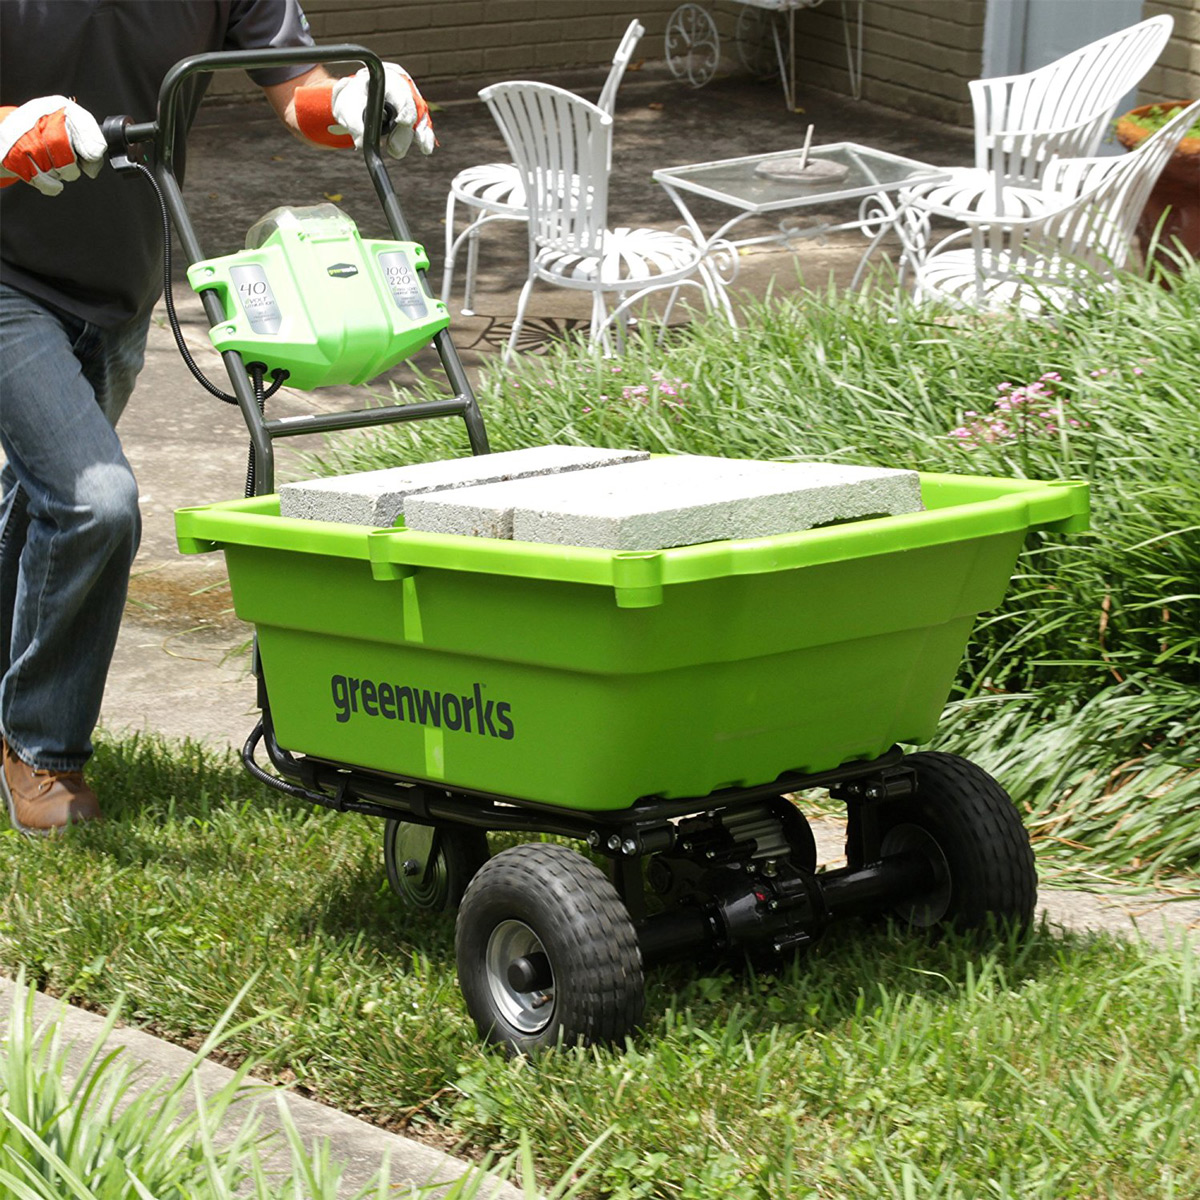 Self Propelled Cart >> Greenworks 40V Self-Propelled Wheelbarrow / Garden Cart - The Green Head